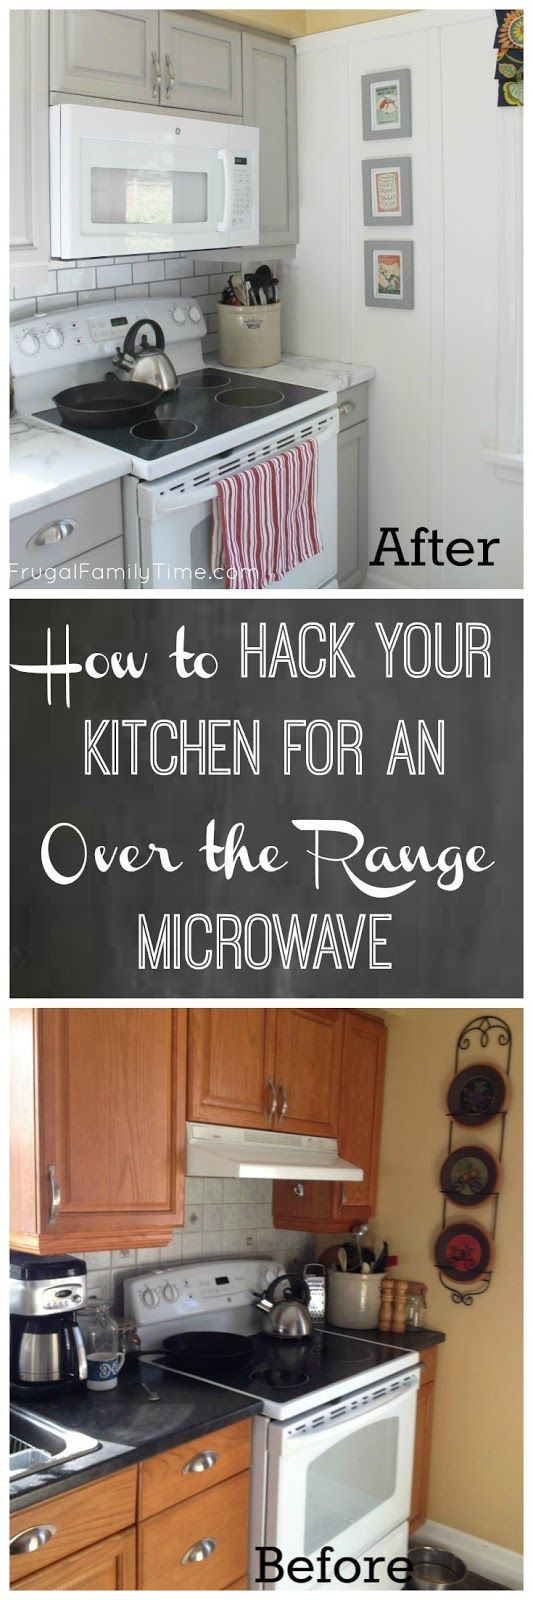 How to make an over-the-range microwave fit - our kitchen update for way less cash.  An OTR microwave can be a great DIY for a small kitchen.